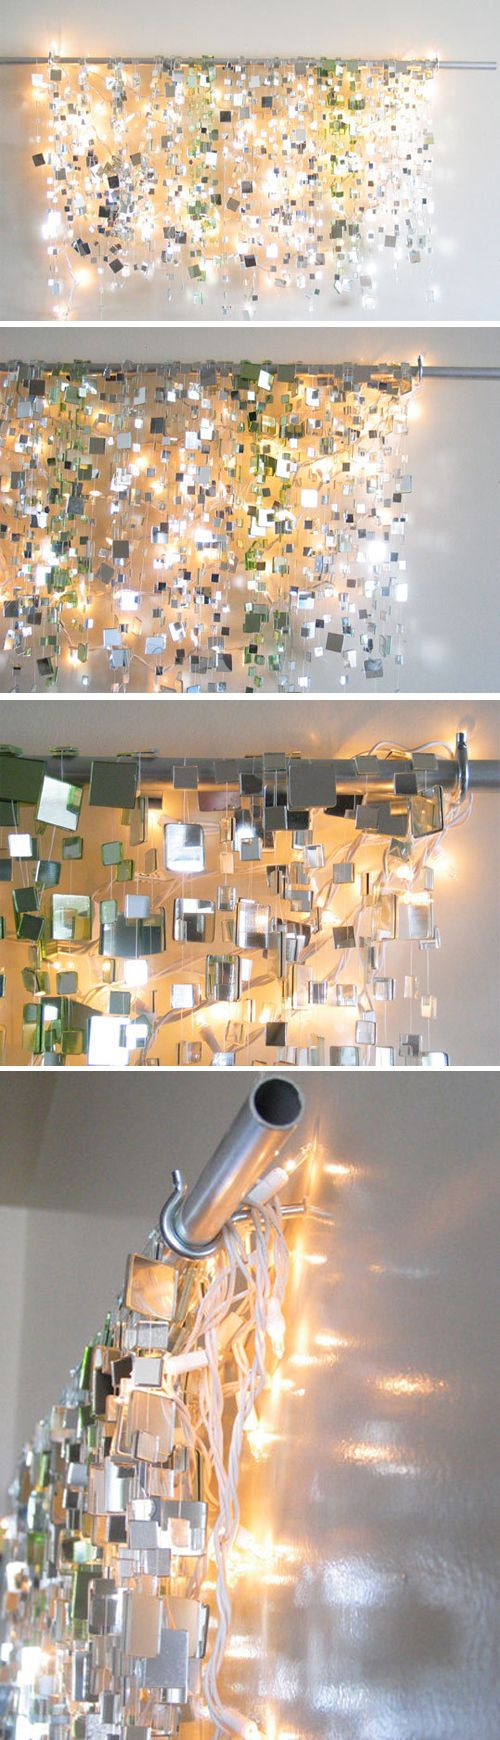 small mirror tiles glued to fishing line with fairy lights behind.: Small Mirror, Tile Glu, Fairies Lighting, Mirror Tile, Wall Decoration, Mirror Garlands, Lighting Mirror, Mirror Lighting, Mirror Decoration